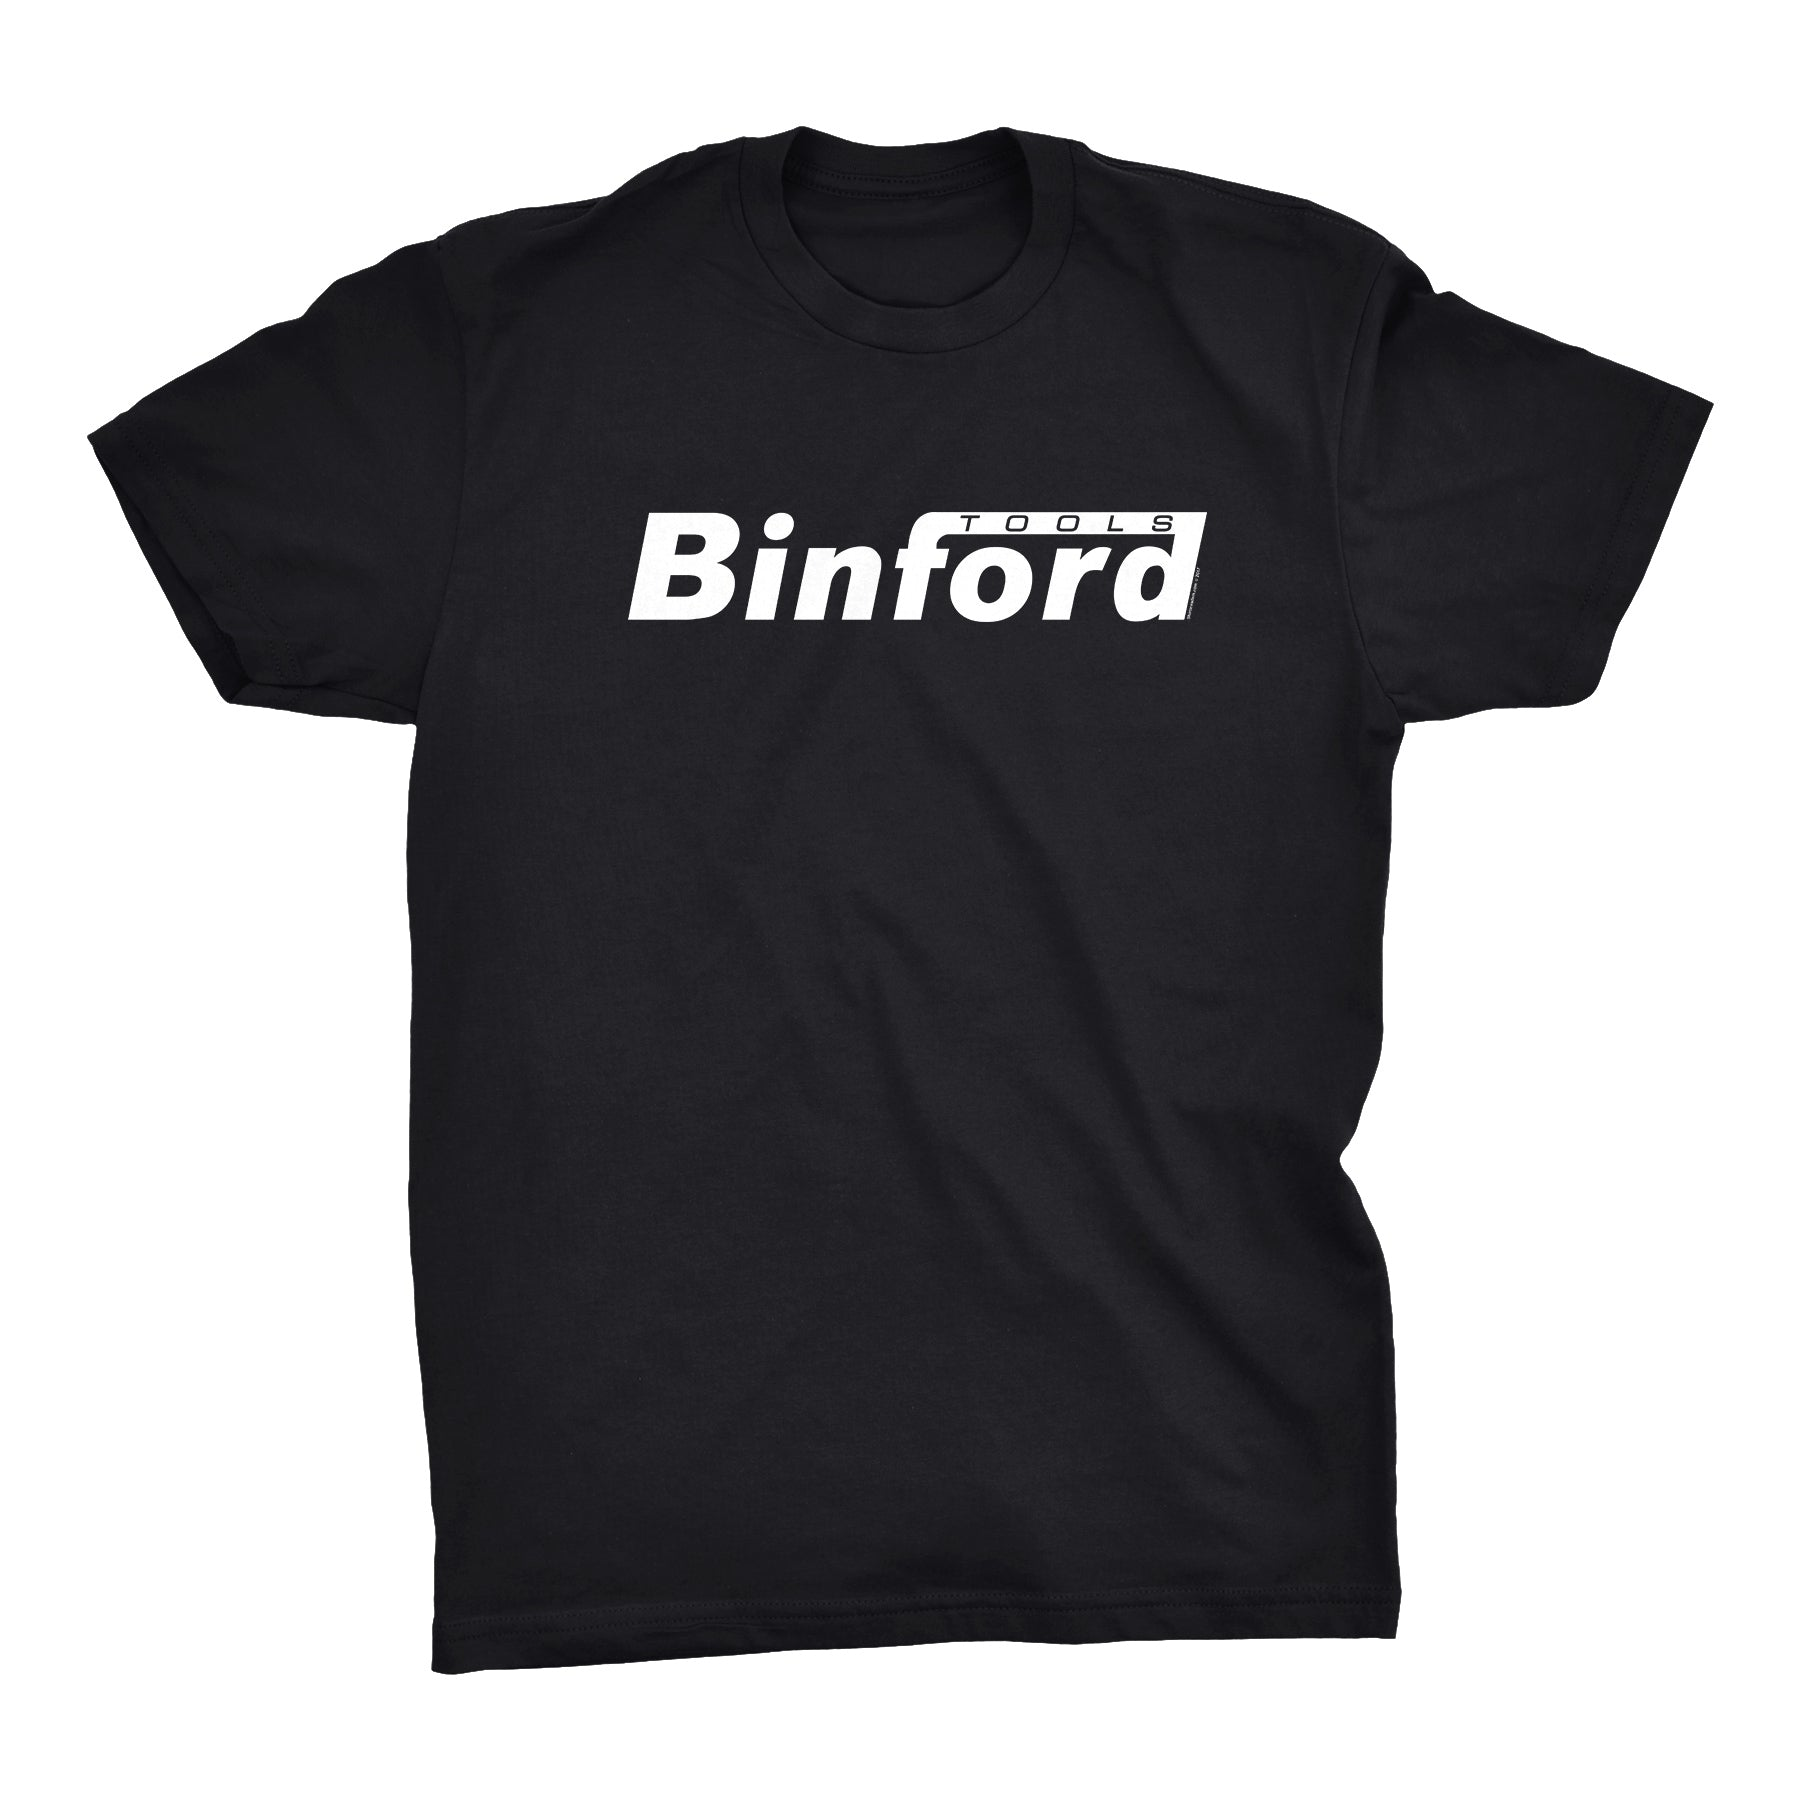 ShirtInvaders Binford Tools -001- Tool Time Home Improvement T-Shirt